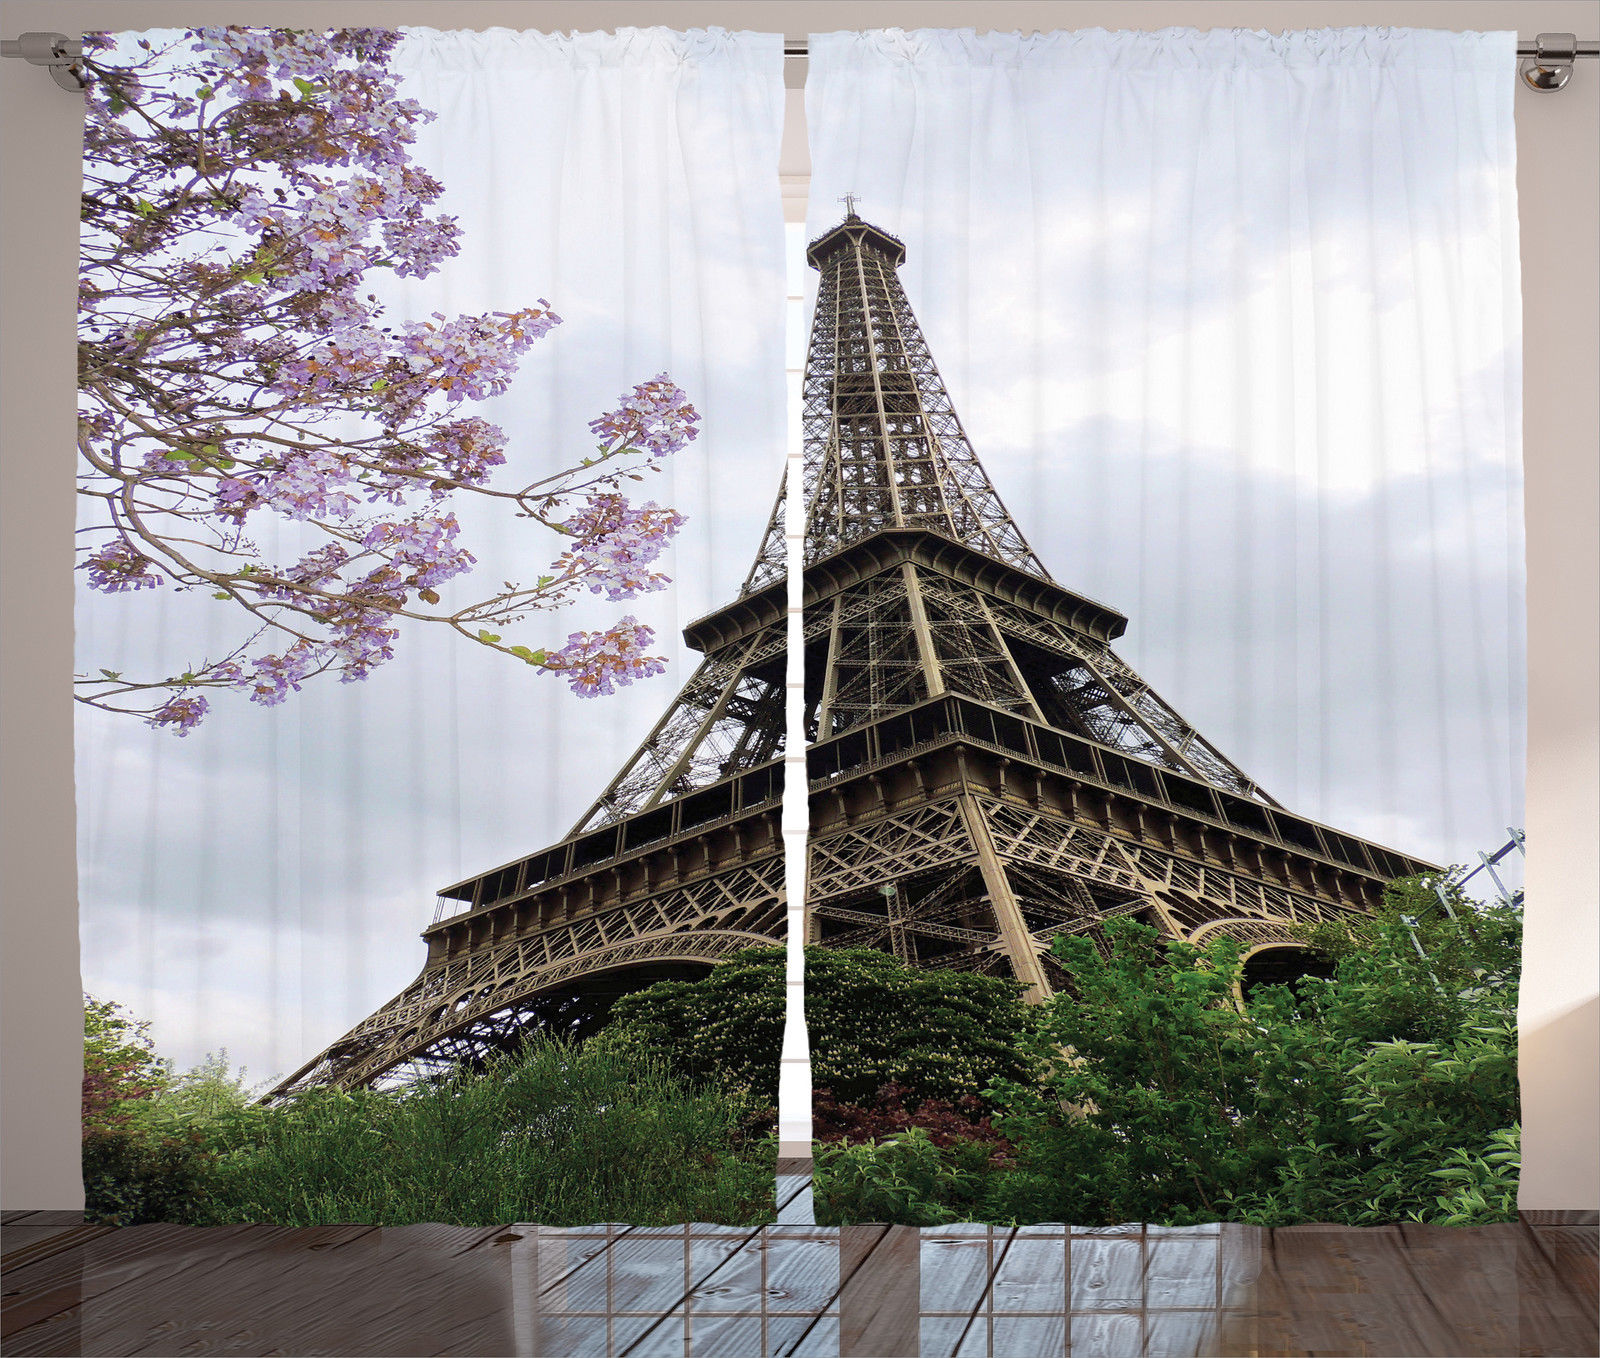 Attractive Eiffel Tower Decor Curtains 2 Panels Set, Eiffel Natural Flowers Colorful  Blossoms Cloudy Sky Perspective